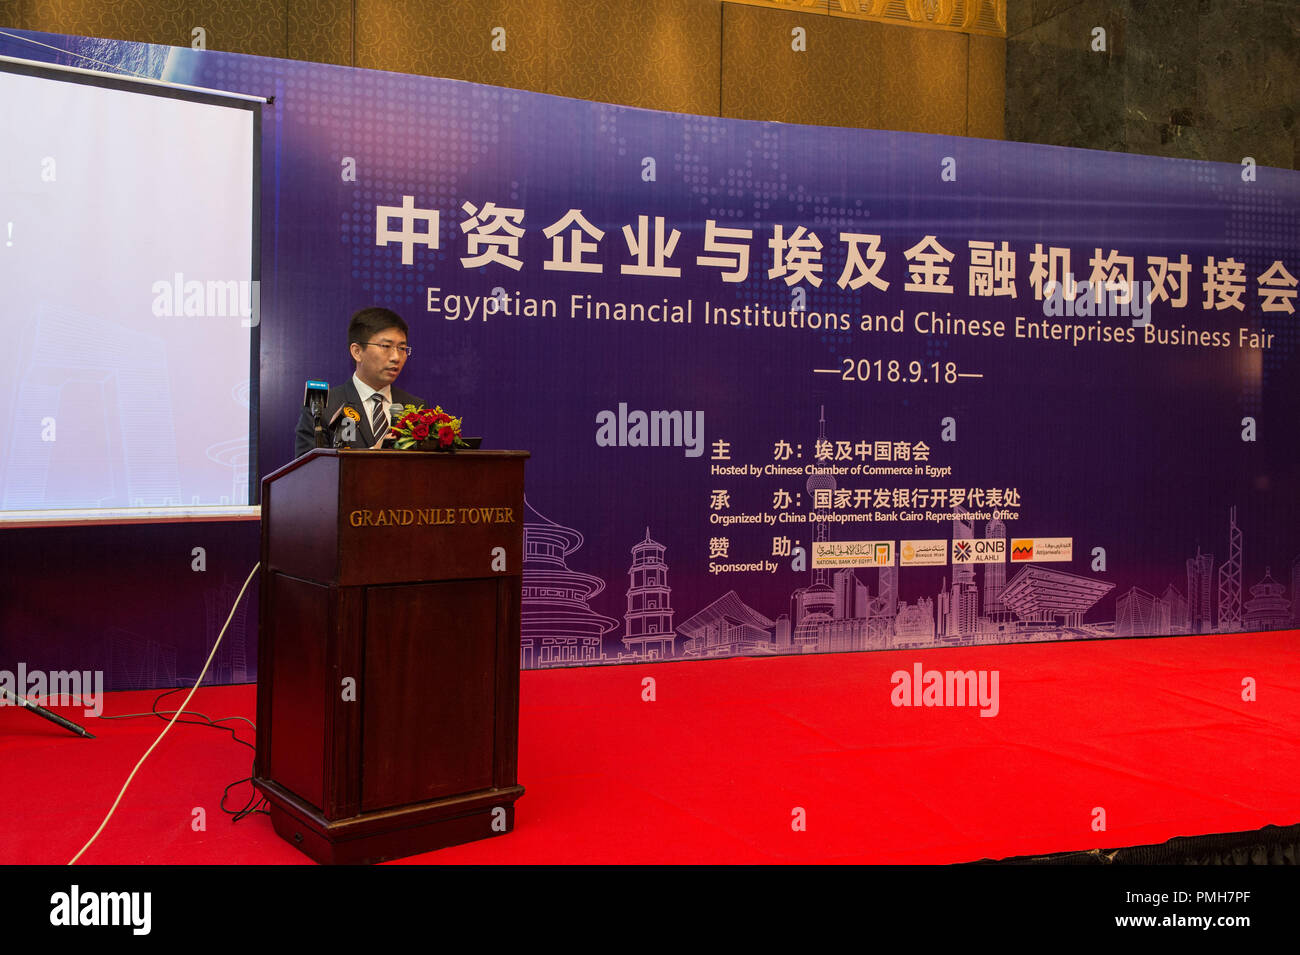 (180918) -- CAIRO, Sept. 18, 2018 (Xinhua) -- Xu Yuankun, representative of China Development Bank Cairo Office, speaks during the seminar 'Egyptian Financial Institutions and Chinese Enterprises Business Fair' in Cairo, Egypt, Sept. 18, 2018.  China Development Bank (CDB), the largest Chinese bank for foreign investment and financing cooperation, expressed Tuesday its confidence in the Egyptian economy and the economic reform program the Egyptian government launched. (Xinhua/Meng Tao) - Stock Image